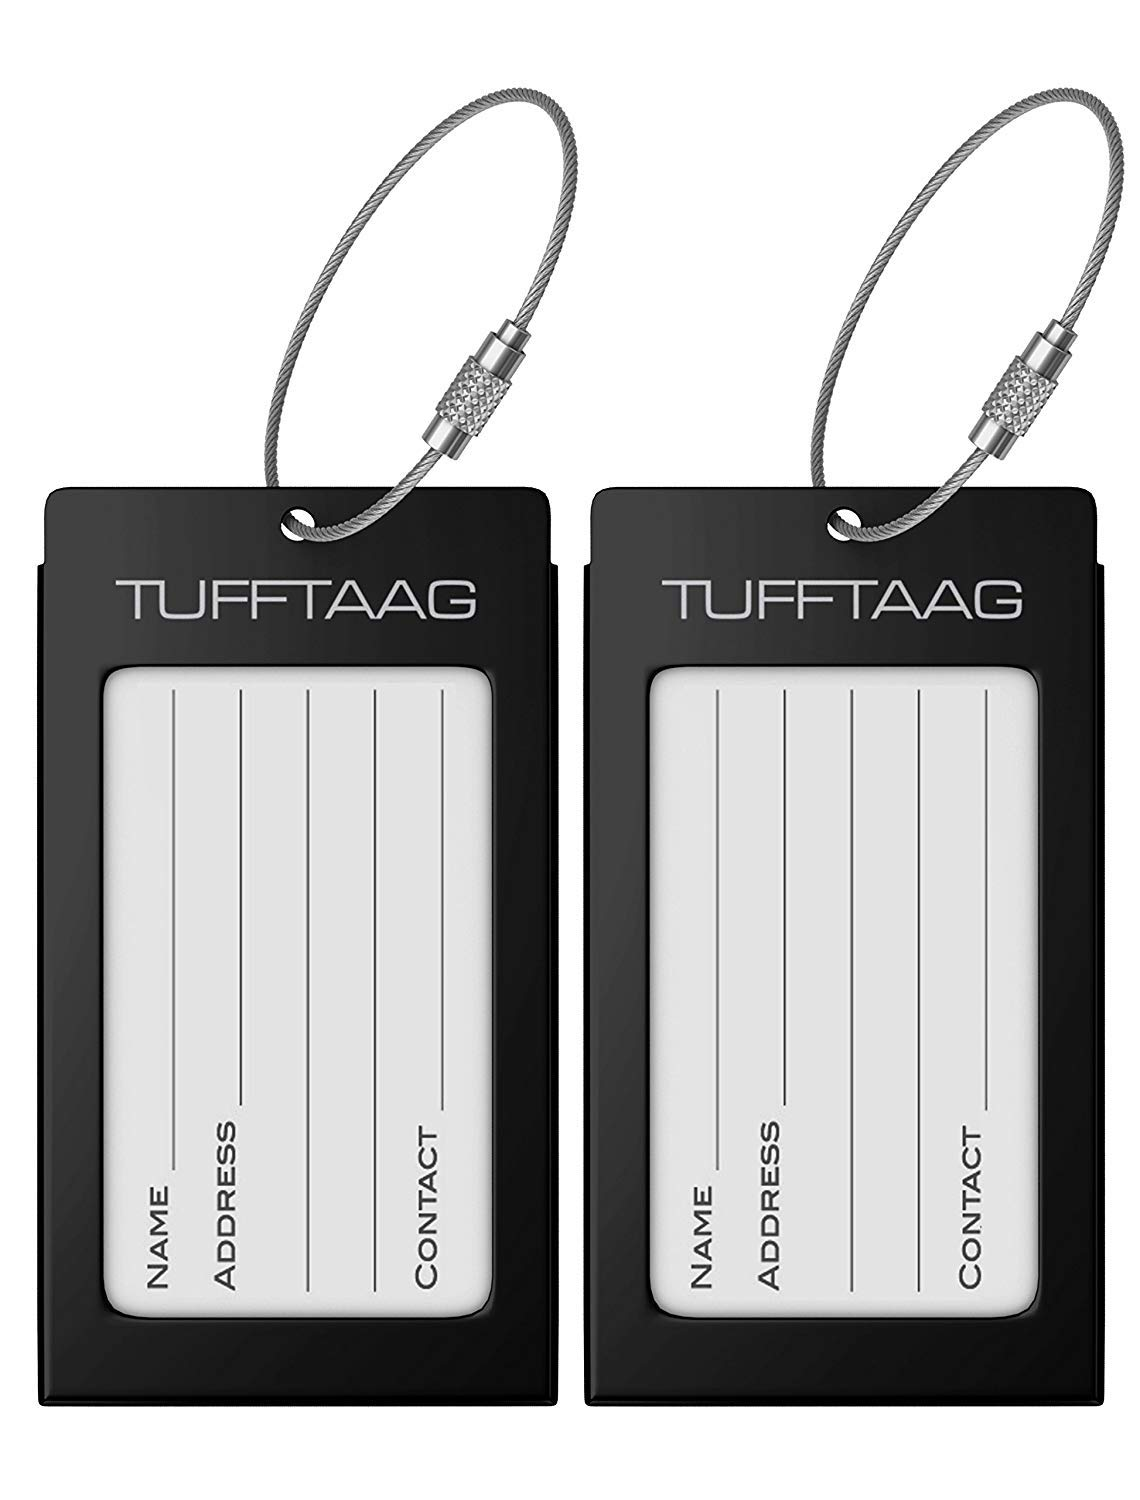 Luggage Tags Business Card Holder TUFFTAAG PAIR Travel ID Bag Tag - Black by ProudGuy